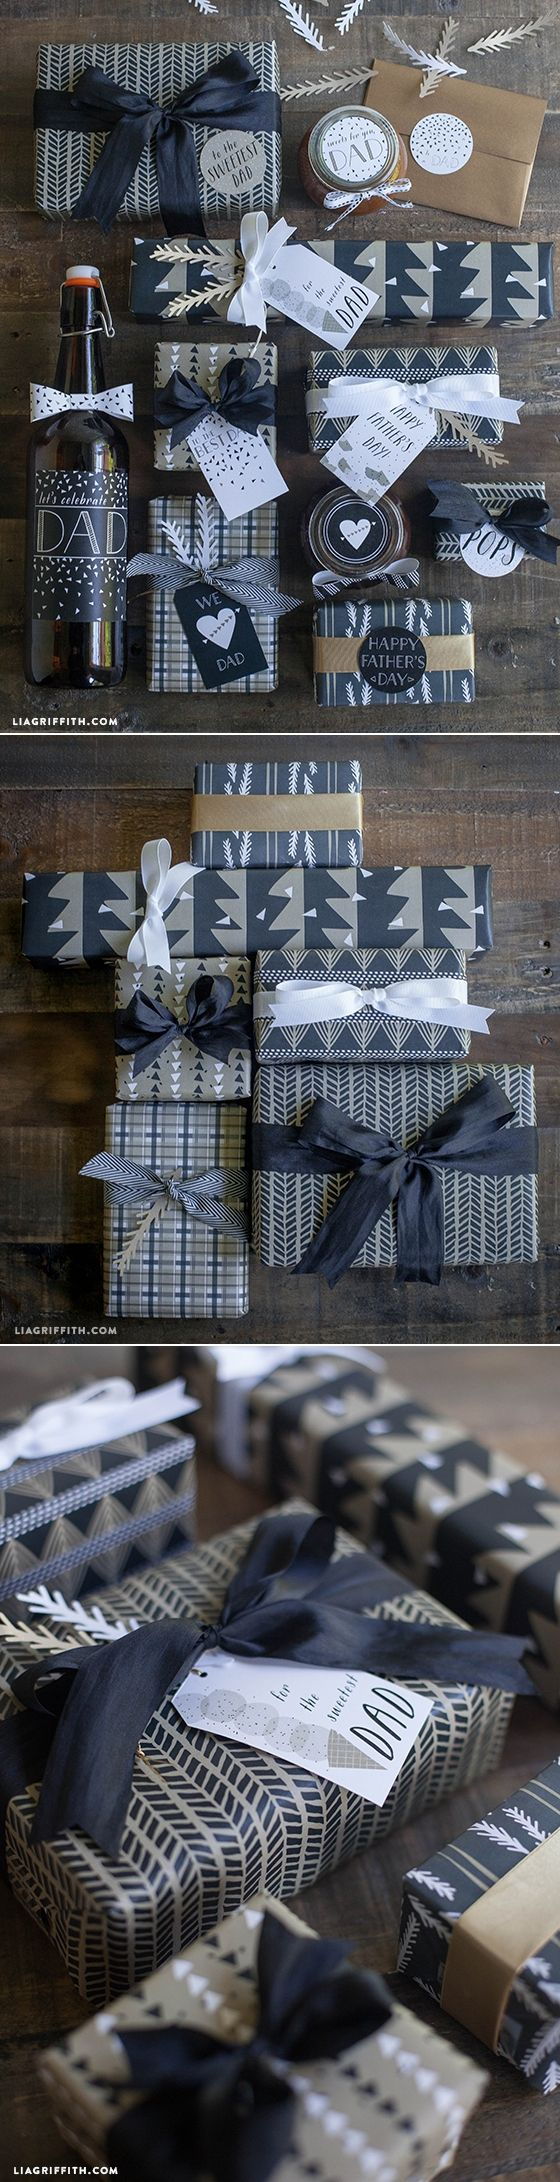 #printable #giftwrap #FathersDay www.LiaGriffith.com